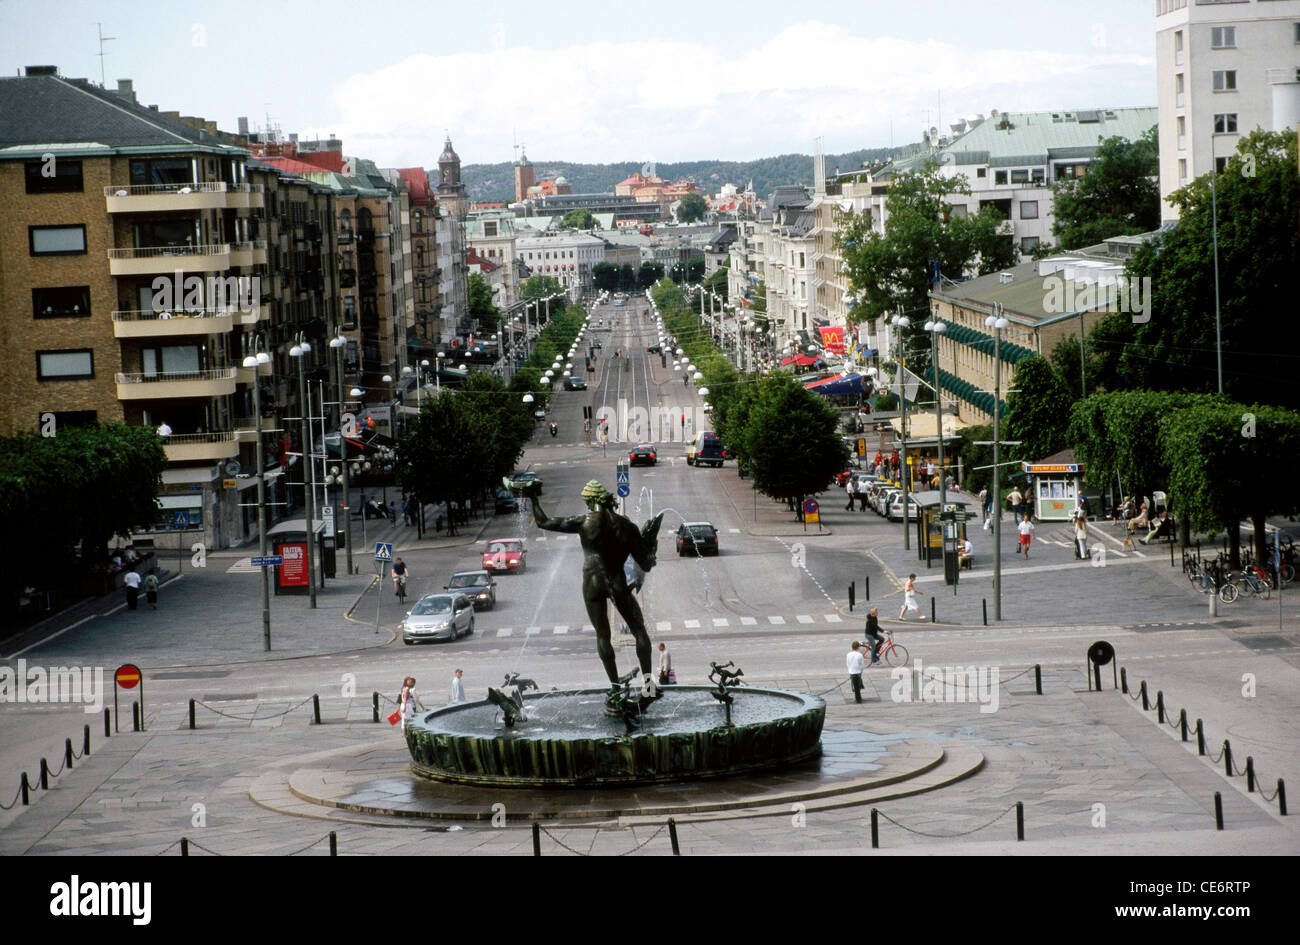 ANG 87870 : statue of poseidon water fountain roundabout view from Gotaplatsen Gothenburg Sweden - Stock Image